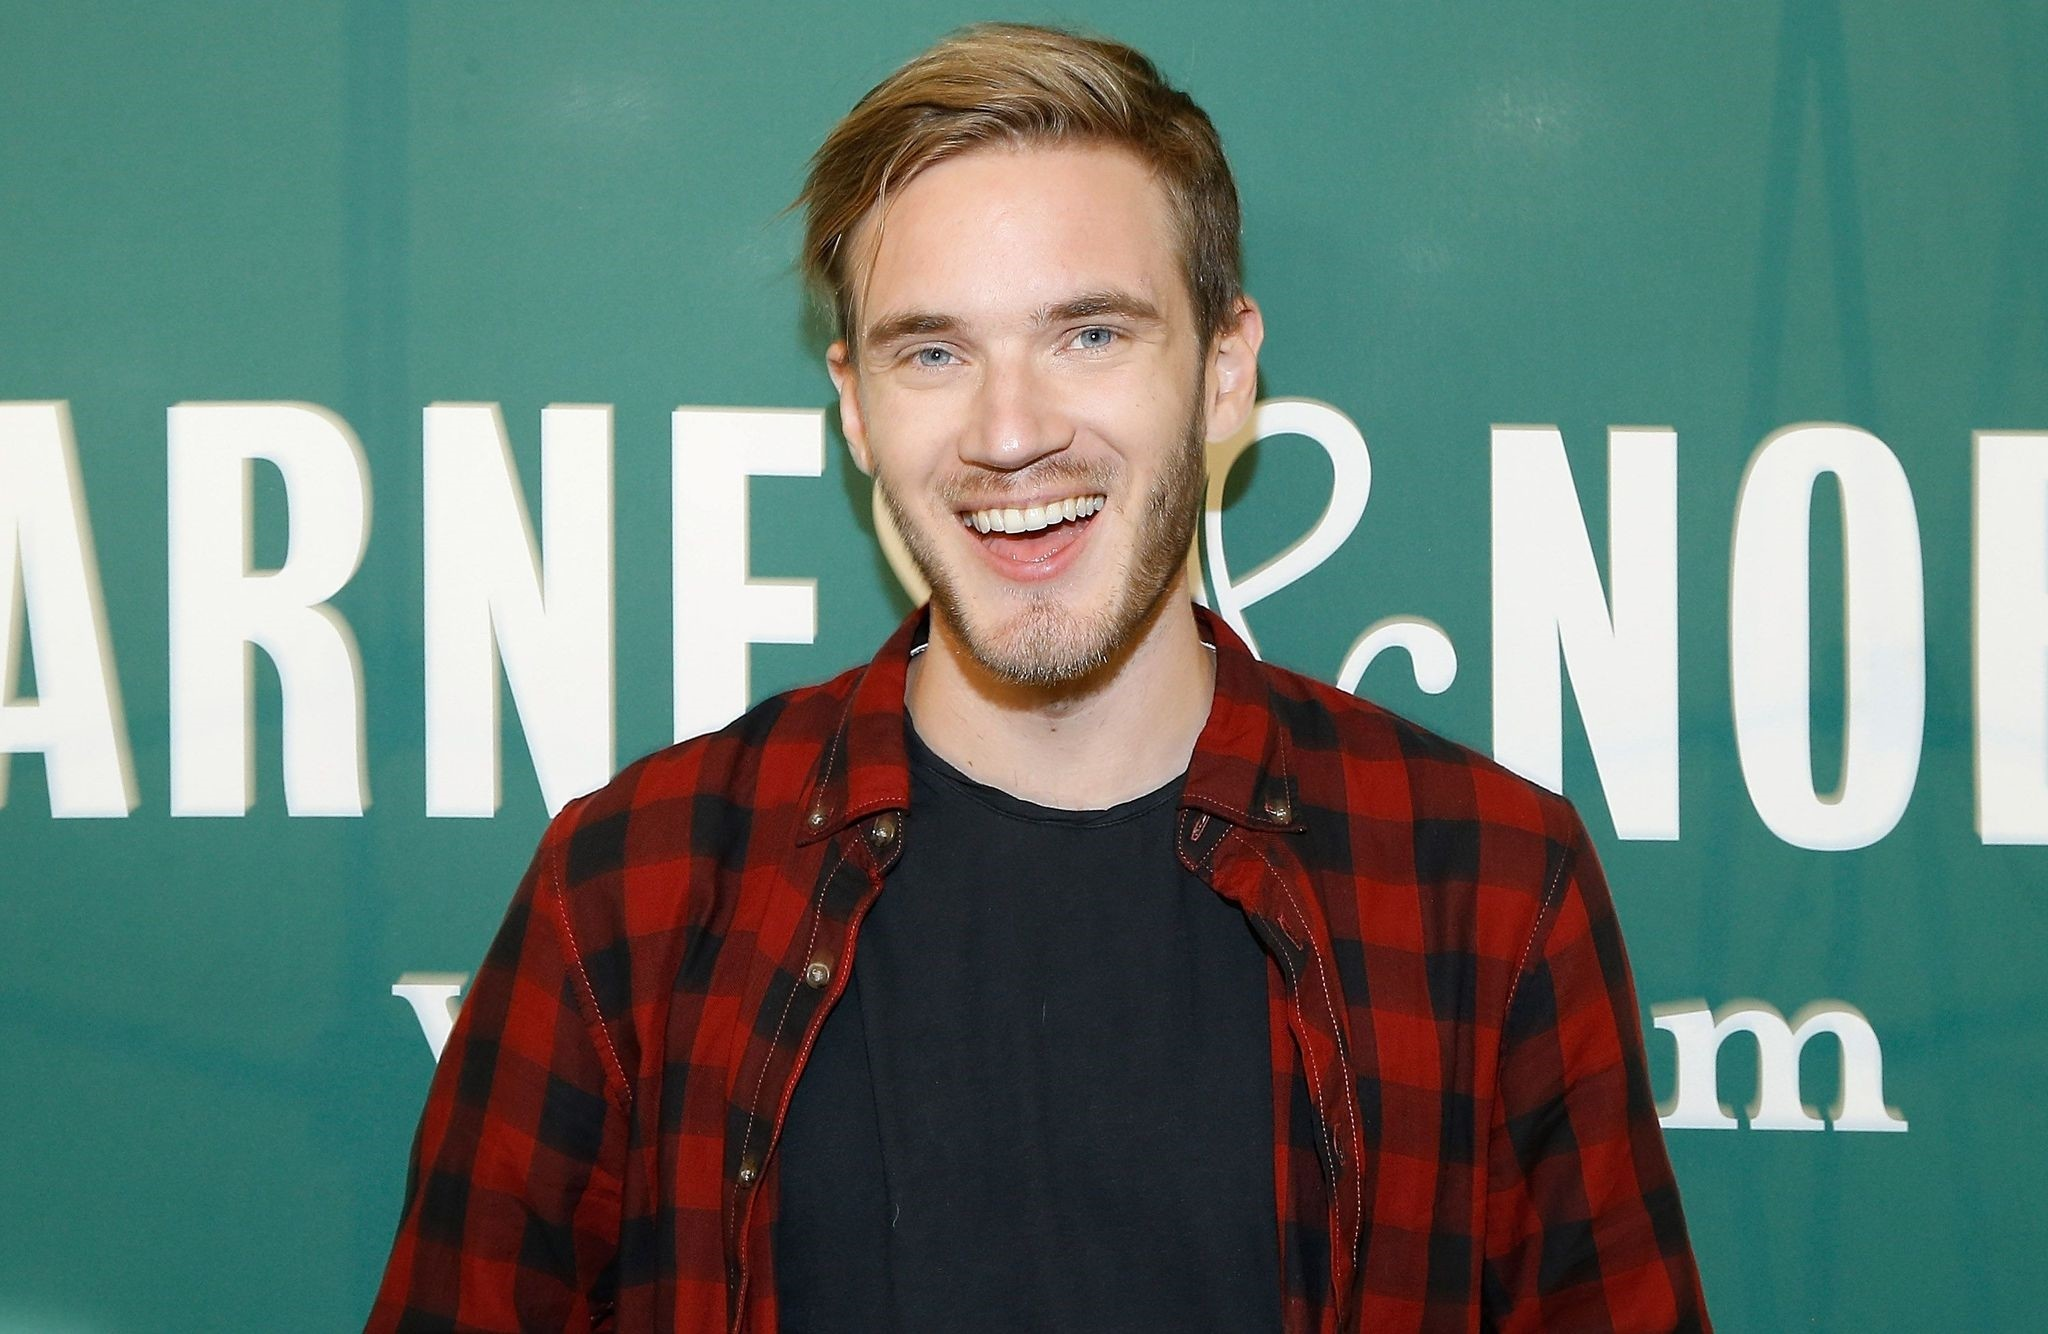 This file photo taken on October 28, 2015 shows PewDiePie at Barnes & Noble Union Square in New York. (AFP Photo)